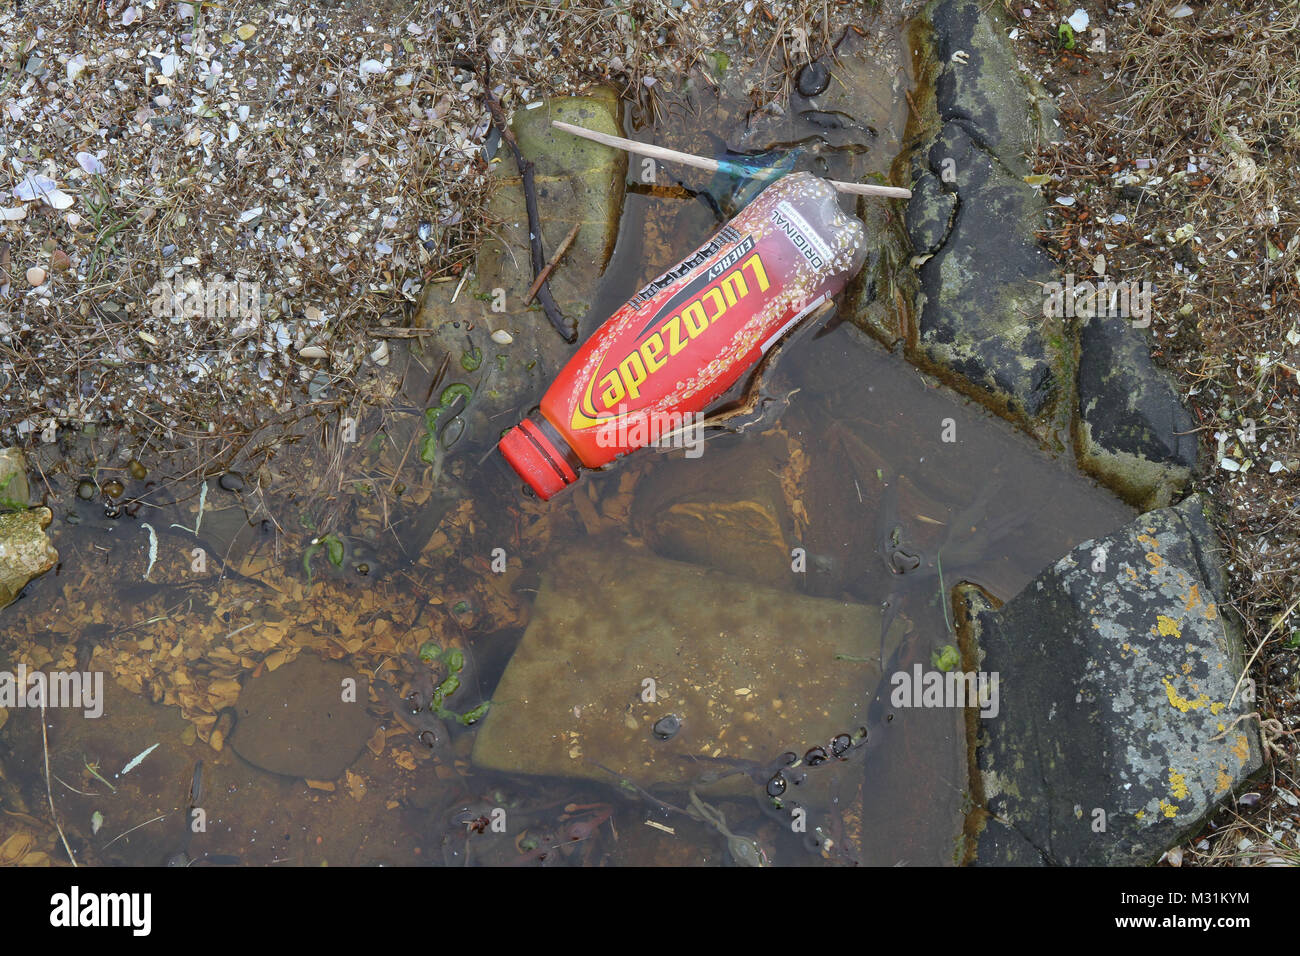 Debris washed up on a UK beach - a plastic bottle washed up on the shore.. - Stock Image